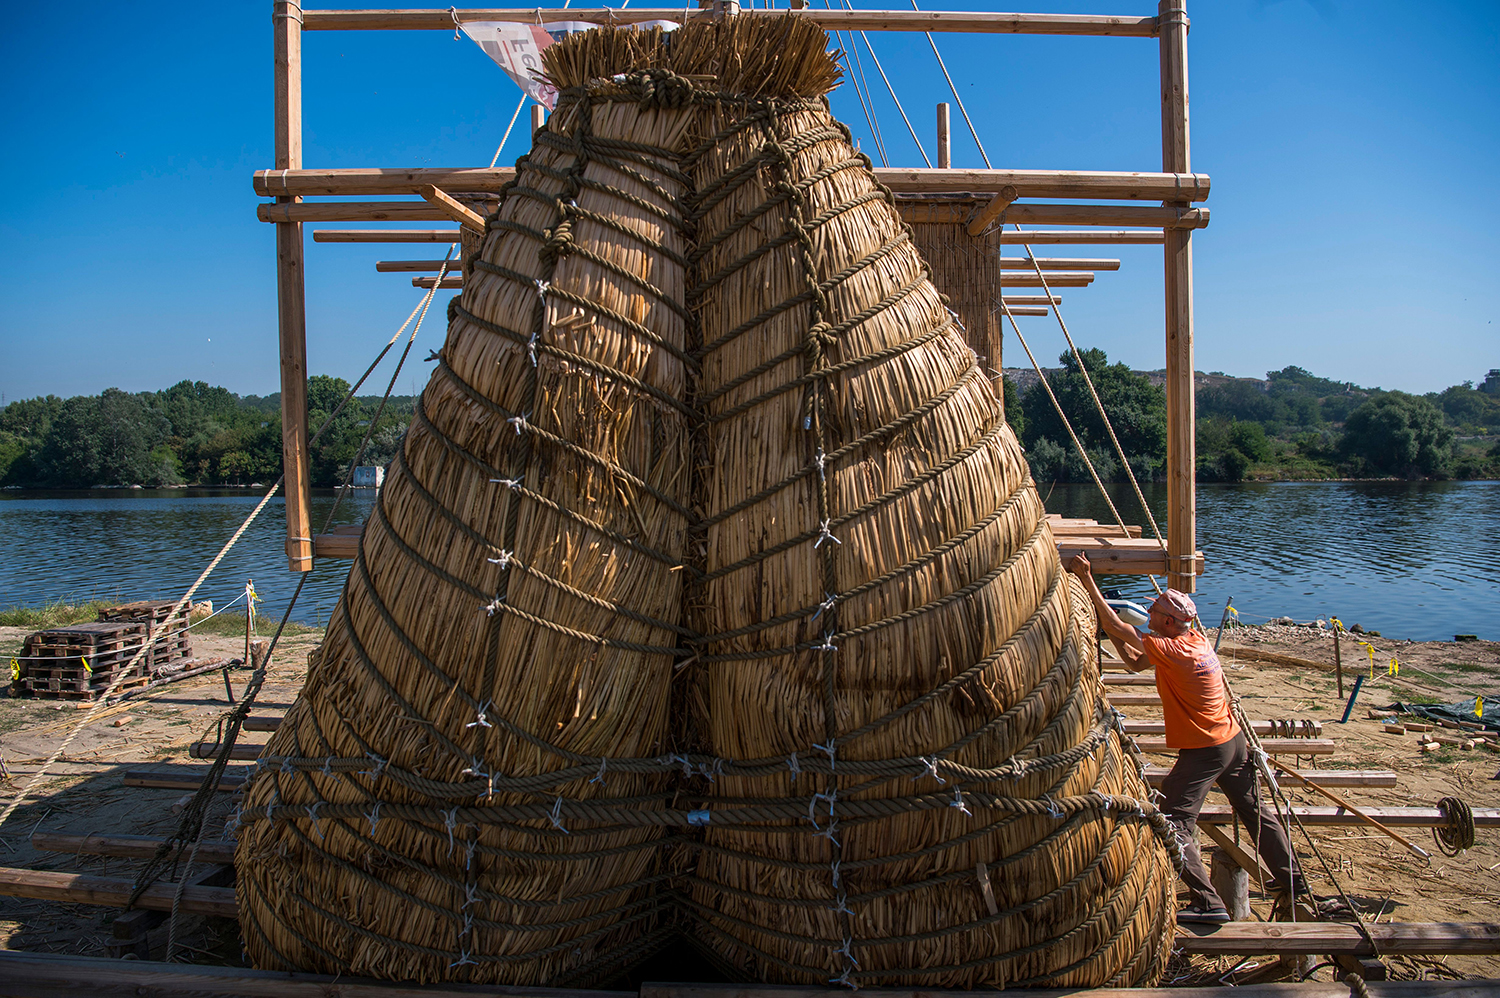 A member of the crew assembles a sailing reed boat Beloslav, Bulgaria, on July 25. A team of researchers and volunteers from eight countries are preparing to set out on a 7000-nautical-mile voyage to test the hypothesis that prehistoric trade routes traversed the high seas. NIKOLAY DOYCHINOV/AFP/Getty Images